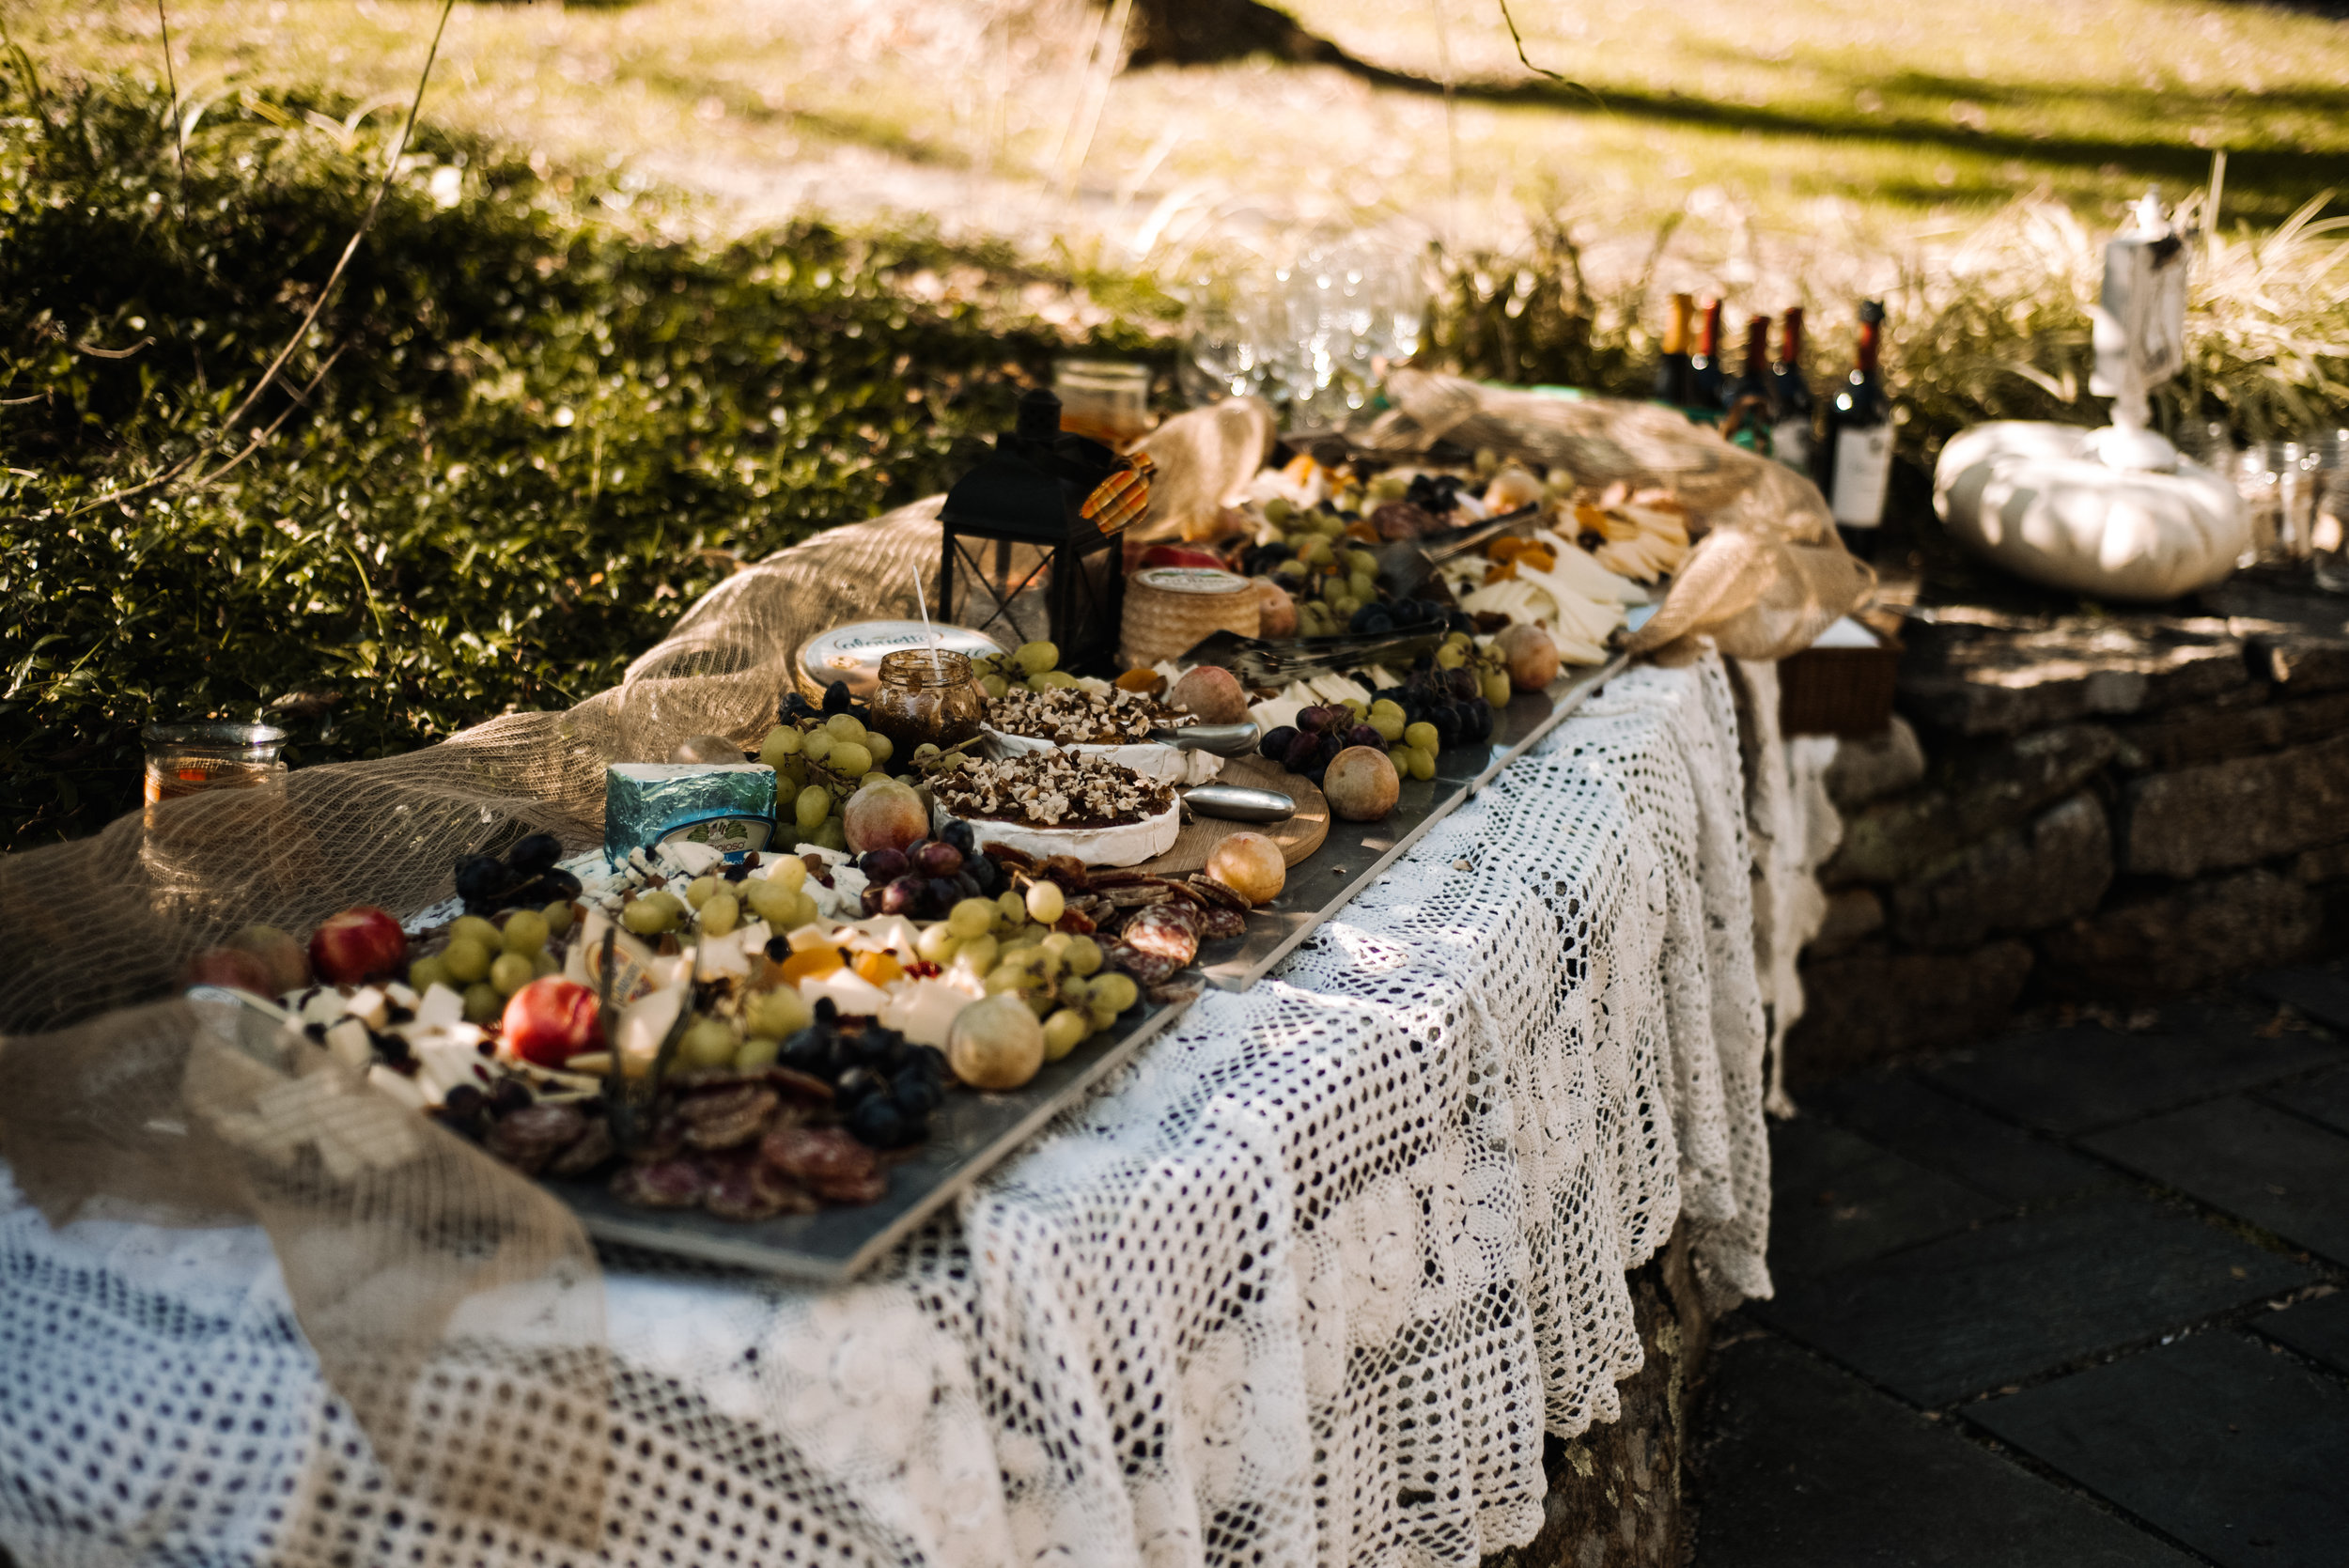 Breaking Wedding Traditions - How to Have an Intimate Wedding - How to Have a Back Yard Wedding - How to Have an Eco Friendly Wedding - Virginia Wedding Planning - Back Yard Wedding in Virginia - Unique Wedding Ideas